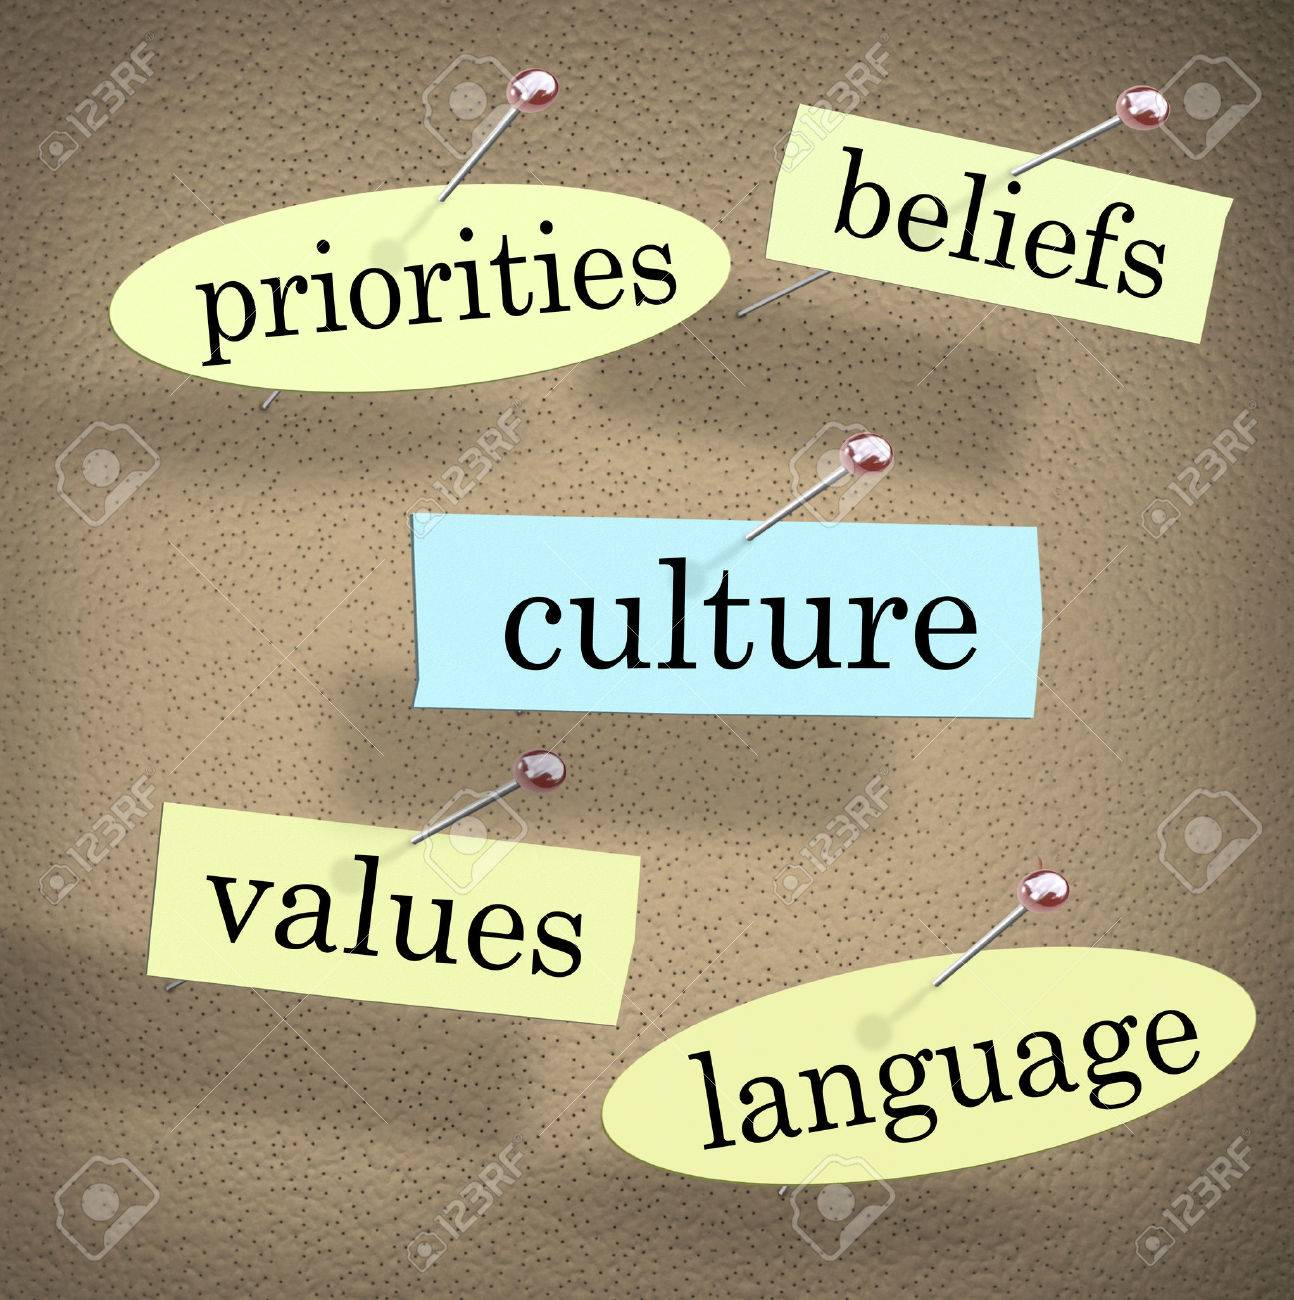 Culture word pinned to a bulletin board surrounded by shared pirorities, values, beliefs, and language of an organization, company, religion or society - 44335627